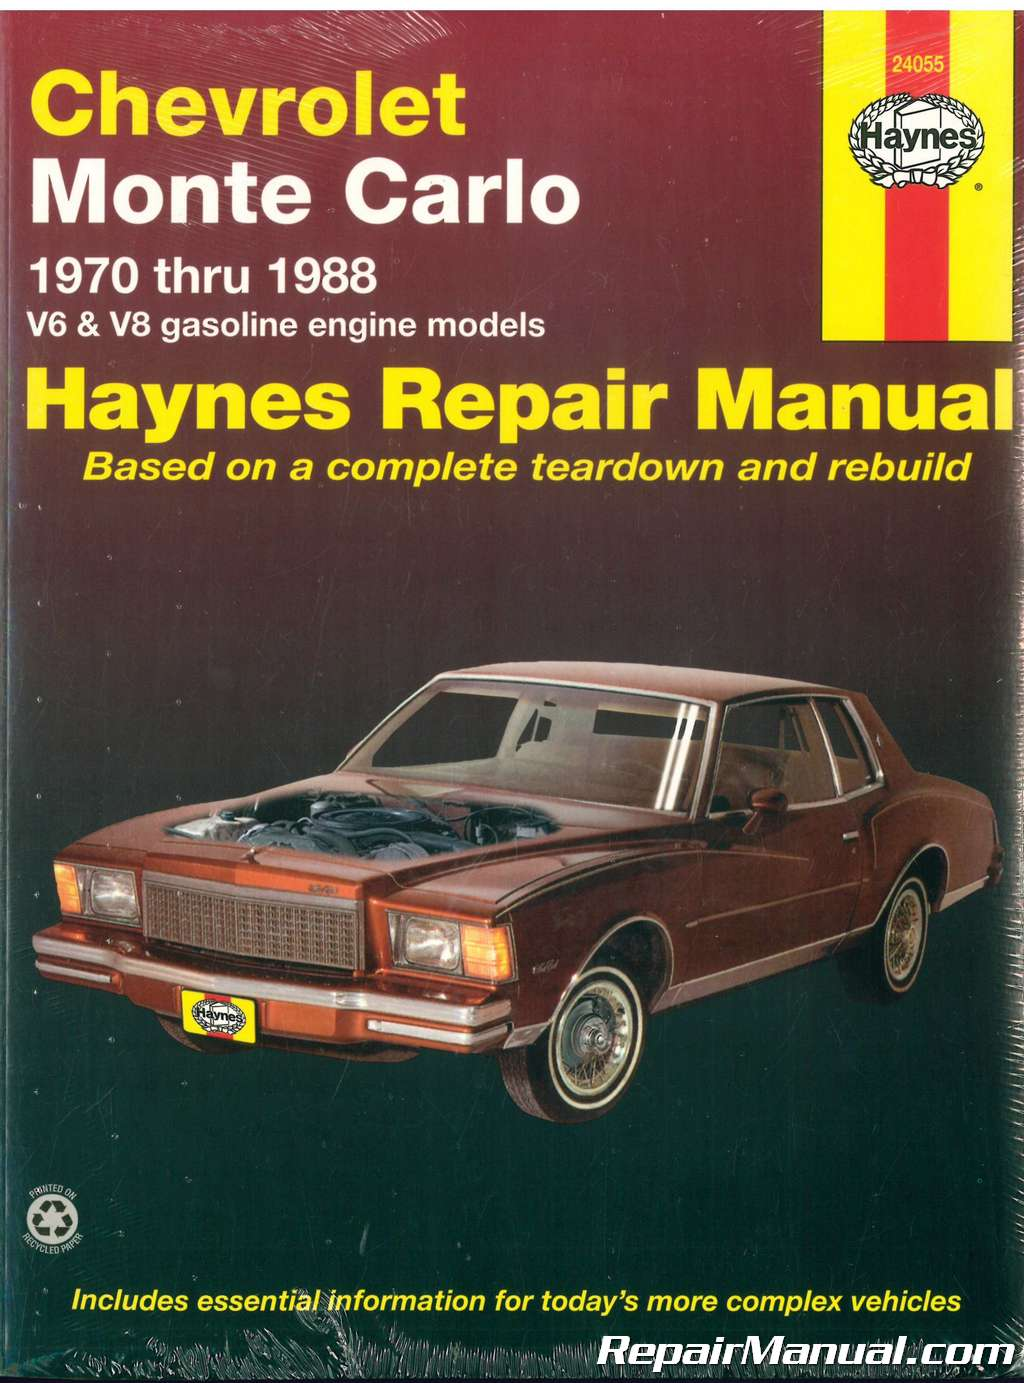 1970 1988 chevrolet monte carlo automobile repair manual haynes rh repairmanual com haynes data book automotive repair manuals haynes automotive repair manual